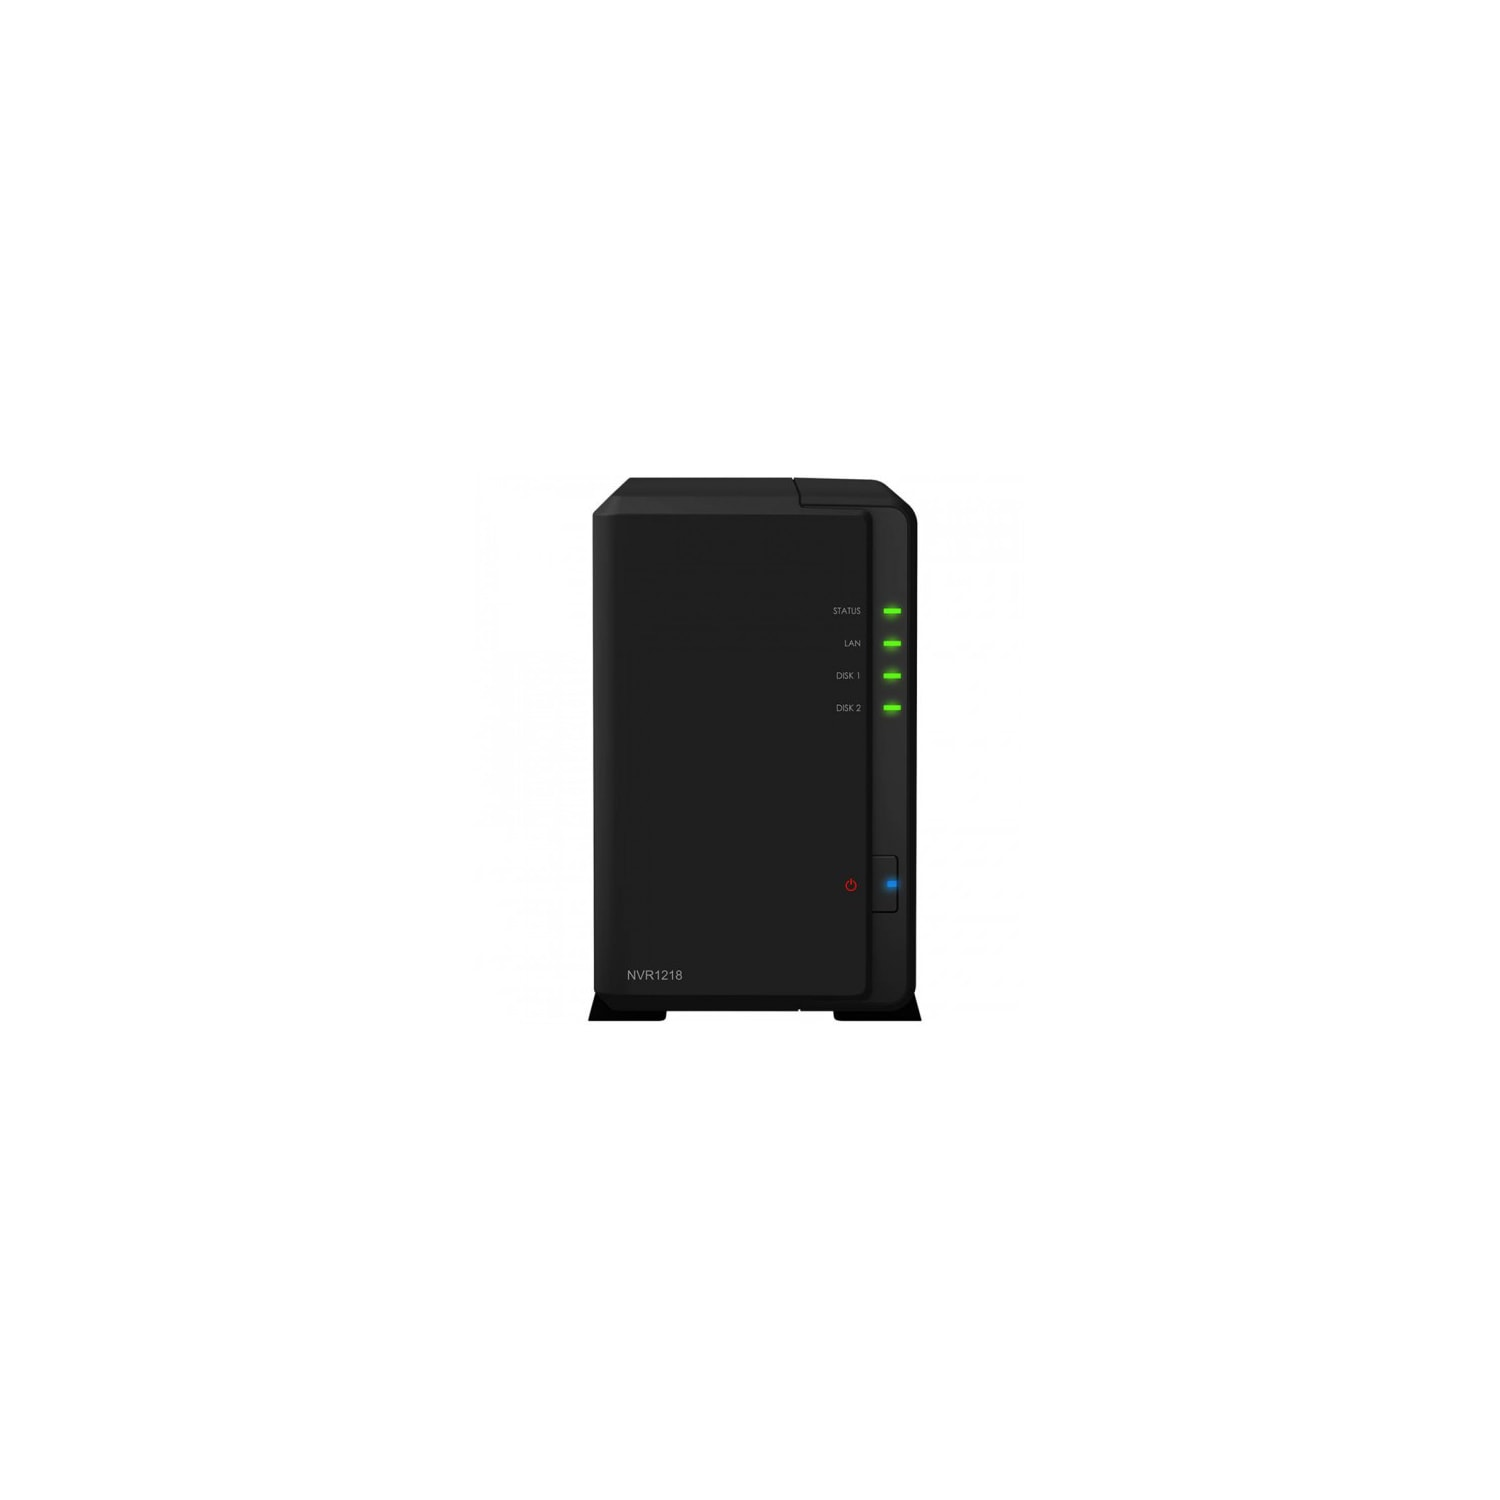 Buy Synology NVR1218 Network Video Recorder 2Bay 12 Channel | DWM